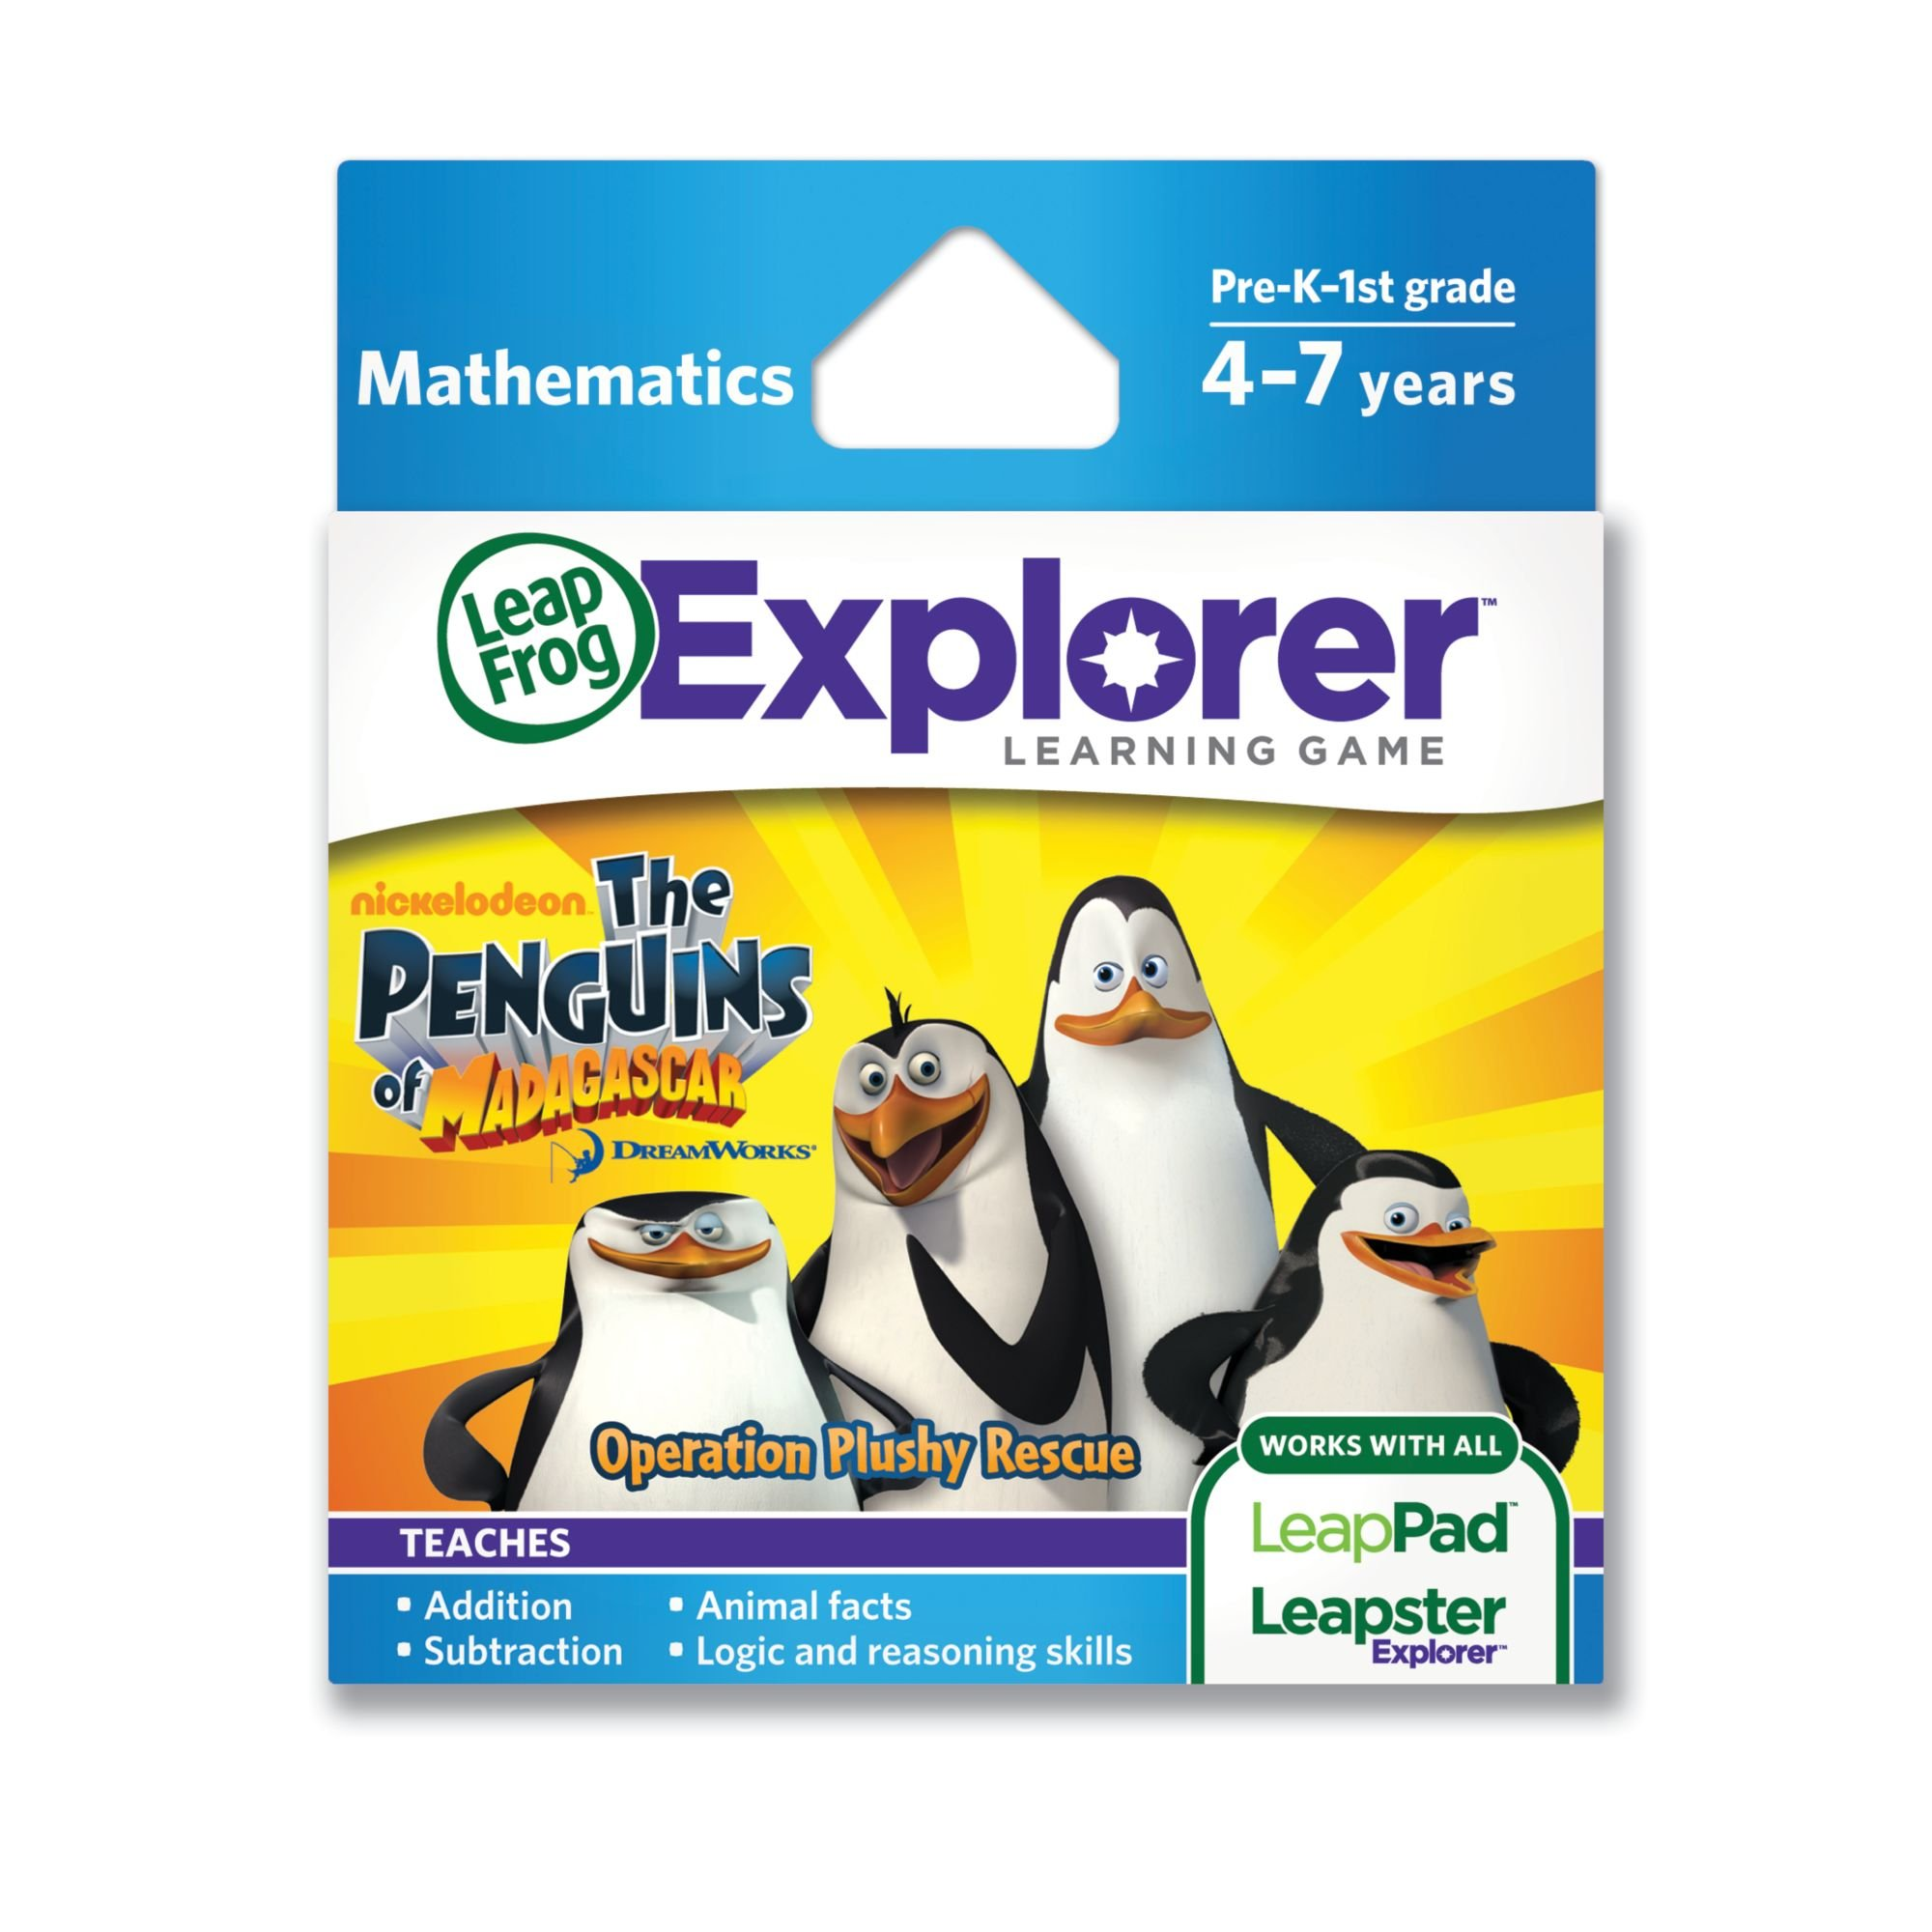 LeapFrogThe Penguins of Madagascar: Operation Plushy Rescue Learning Game (works with LeapPad Tablets and LeapsterGS) by LeapFrog